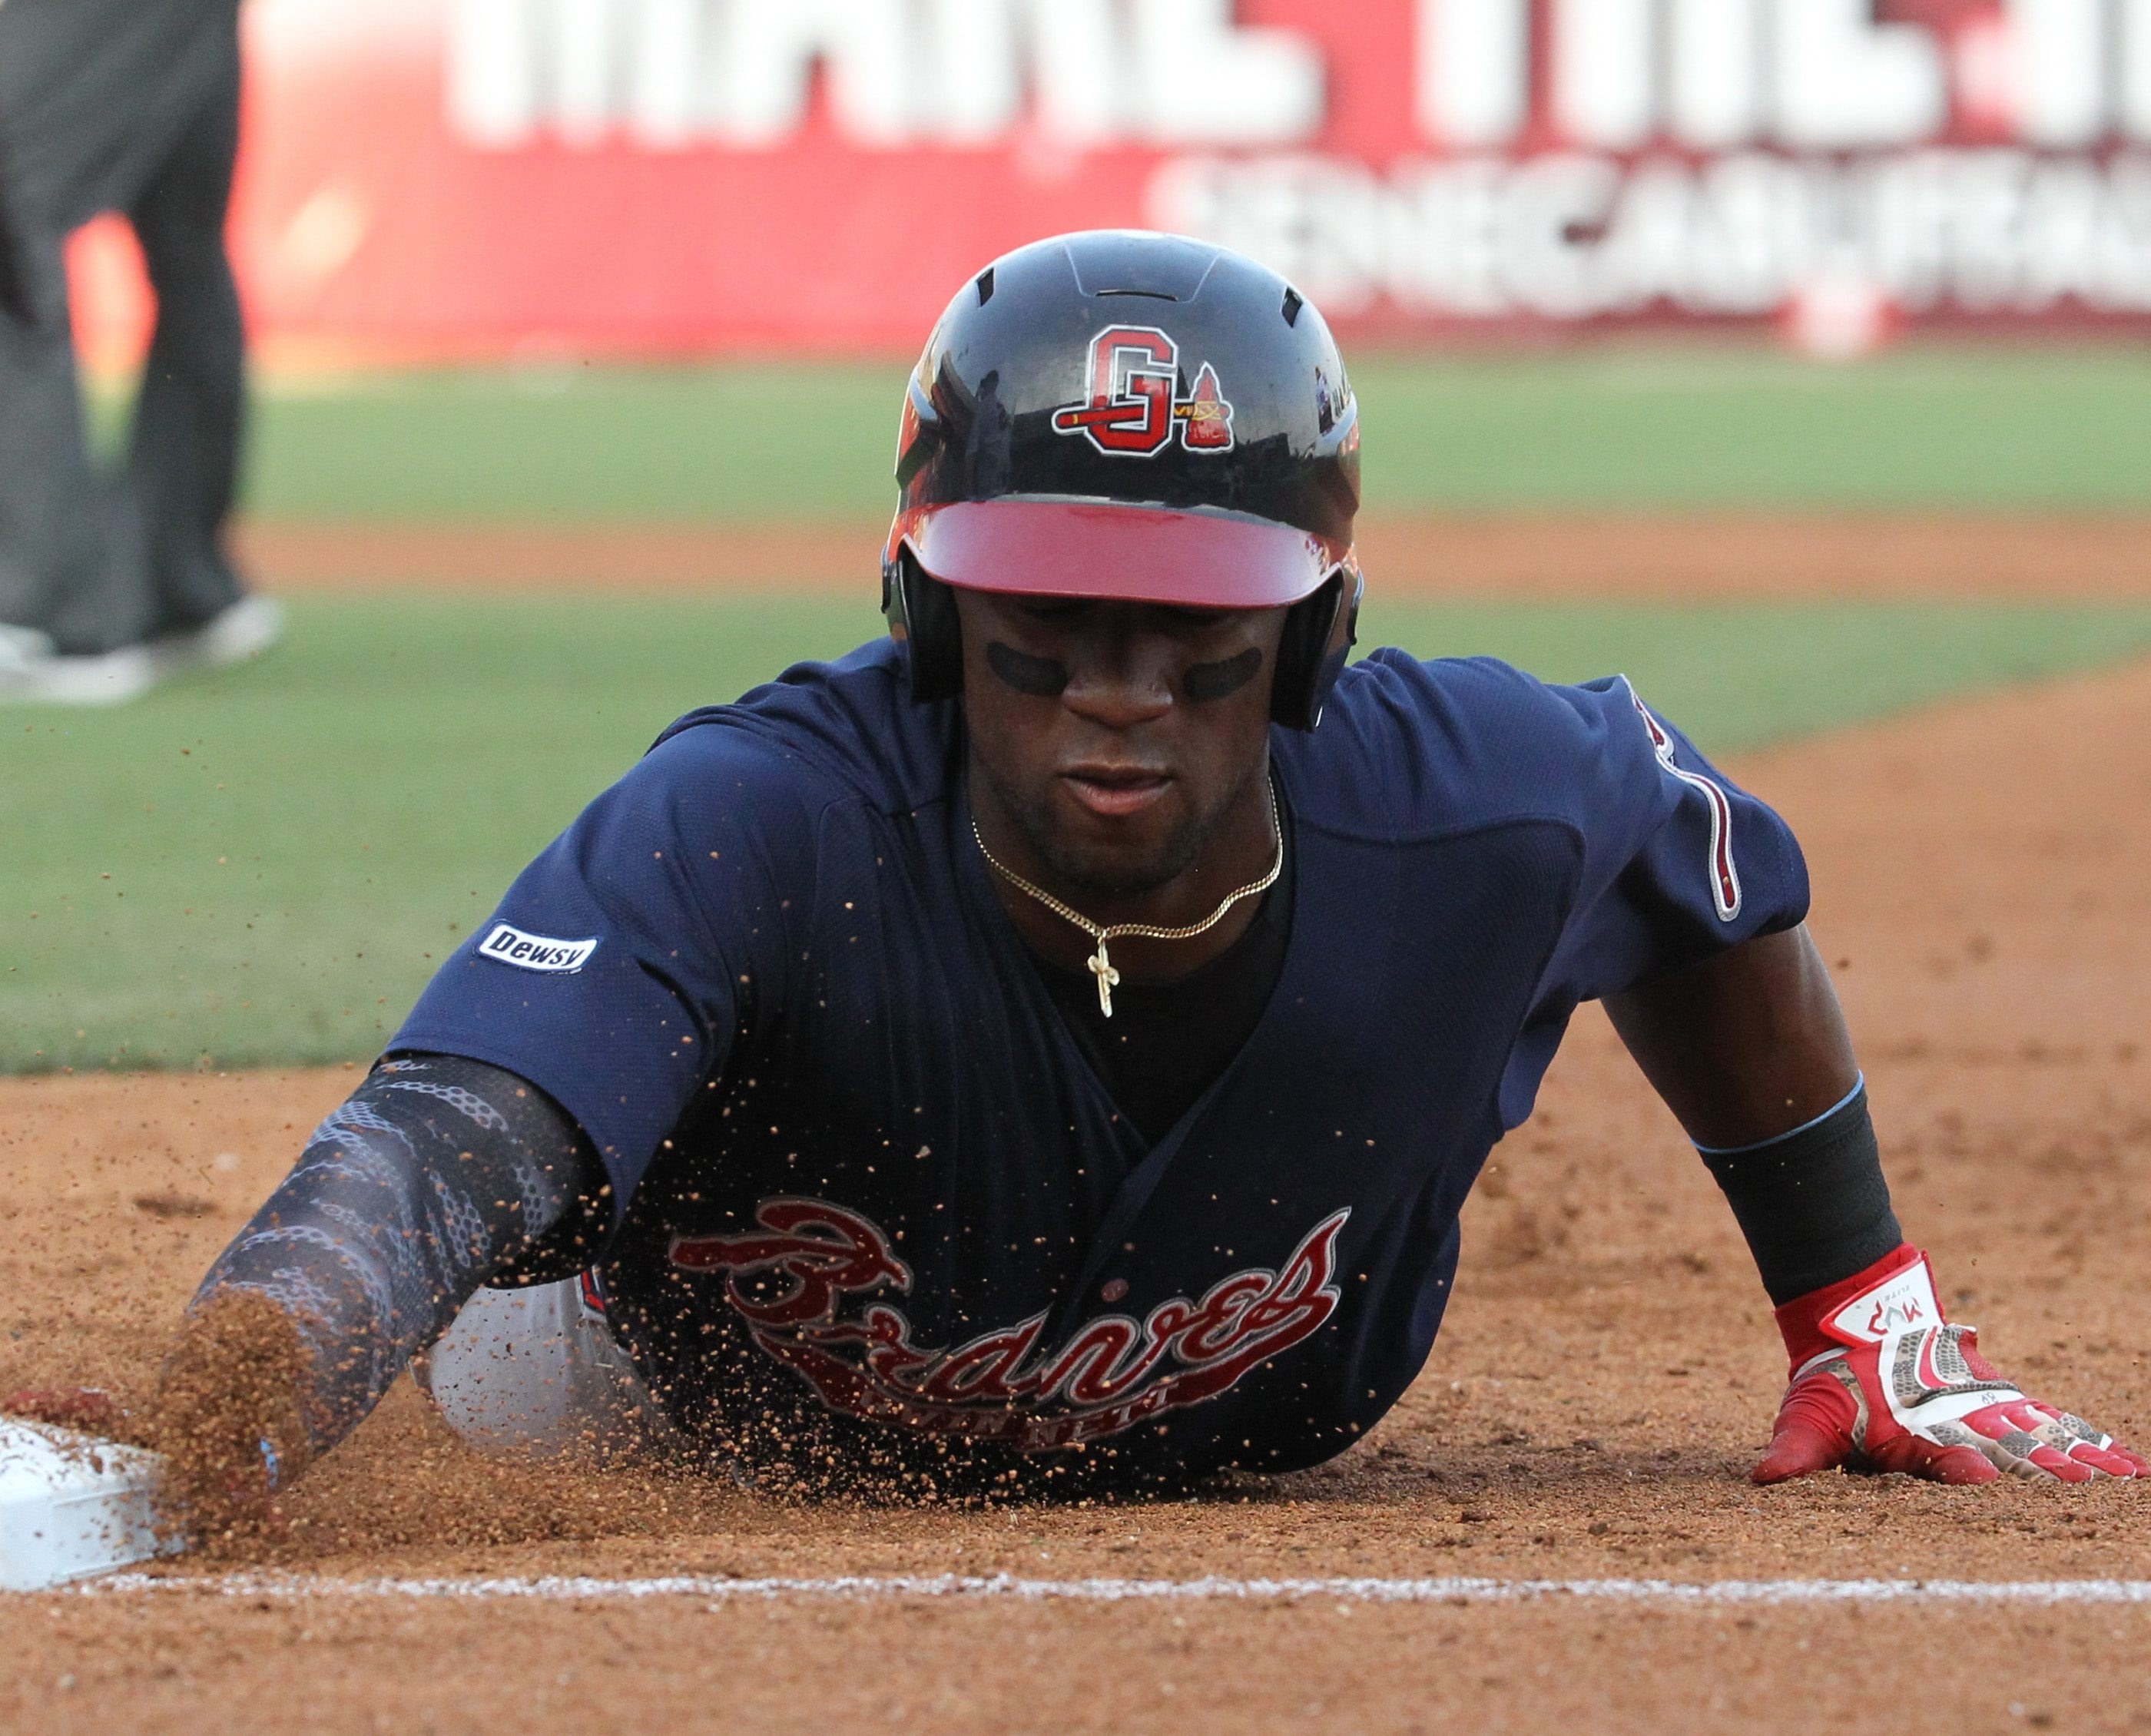 Mel Rojas Jr. and the Gwinnett Braves are well under .500, but they lead the International League South.